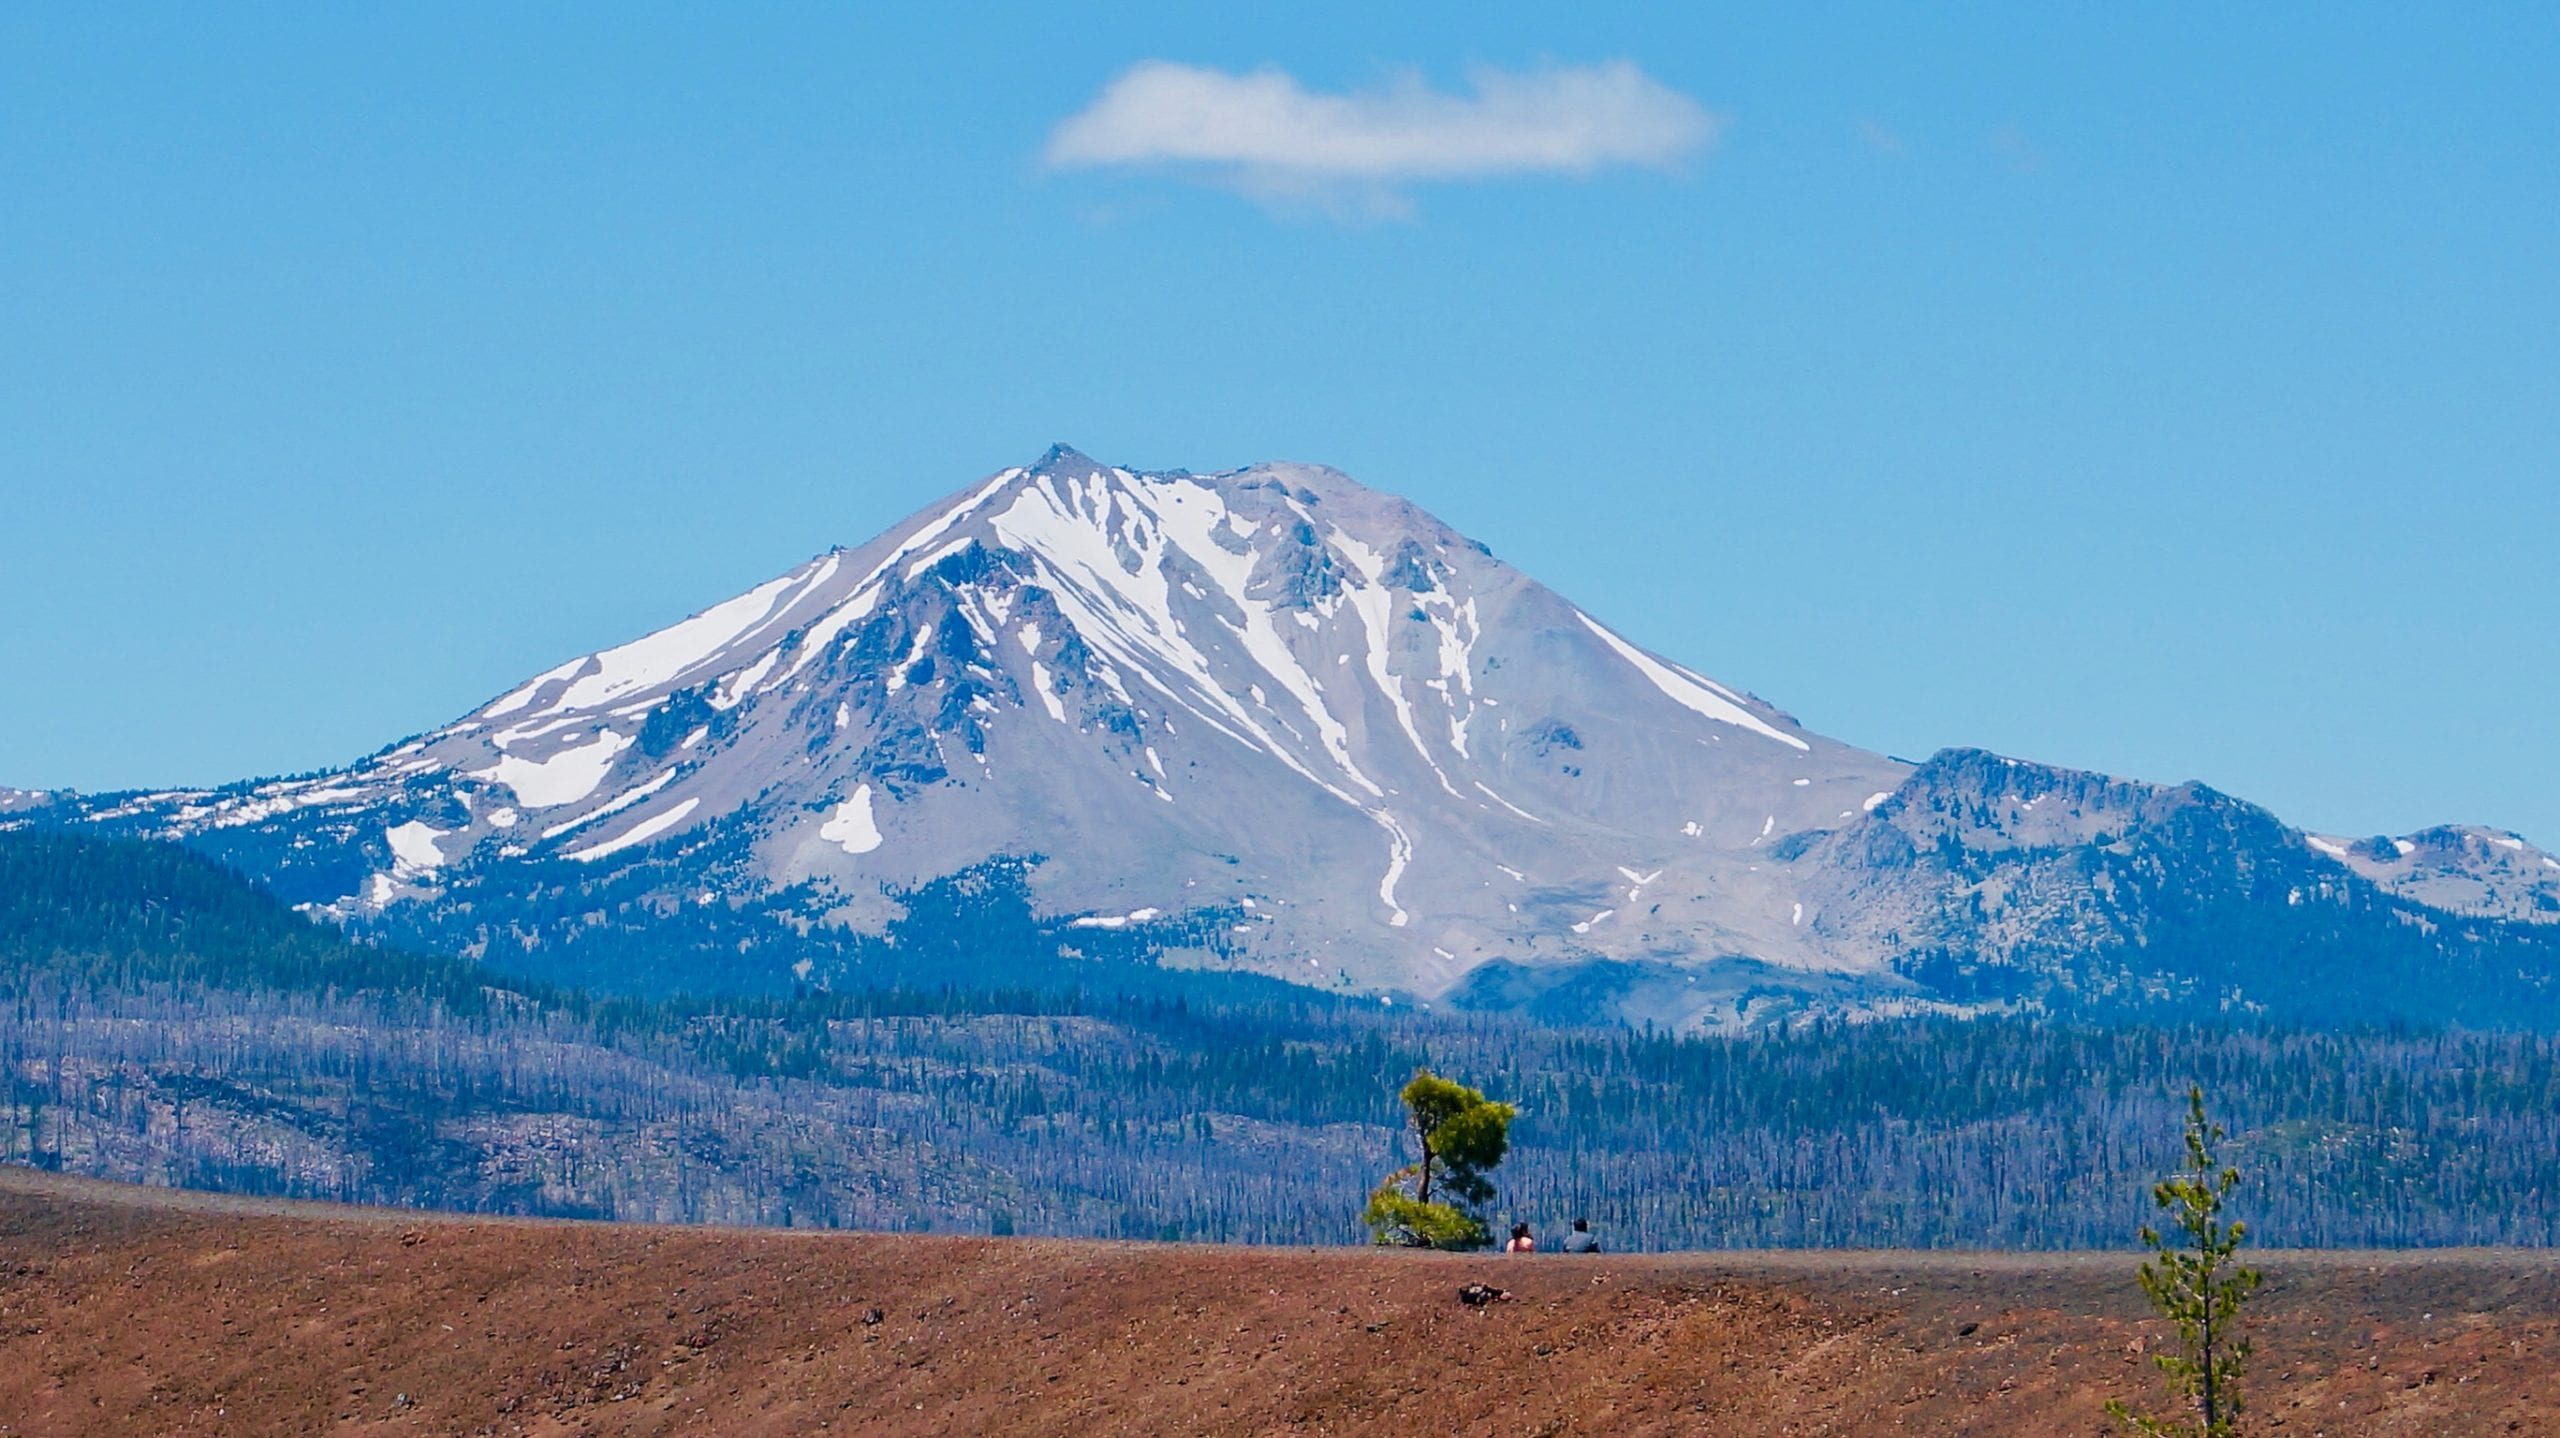 Things to Do in Lassen - Cinder Cone Hike